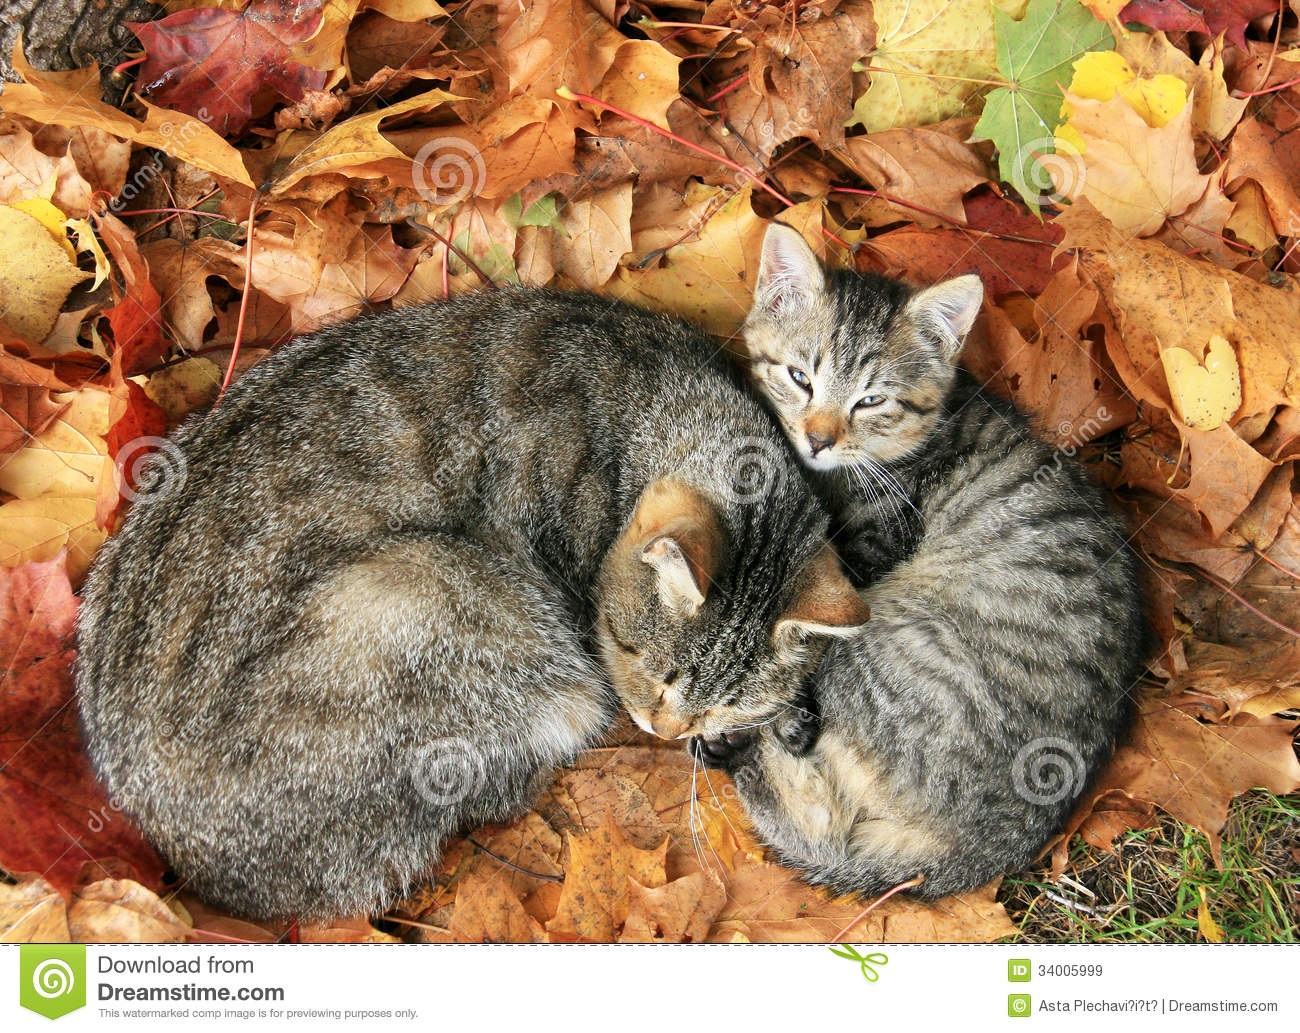 Fall Desktop Wallpaper Themes Two Cats In Autumn Leave Royalty Free Stock Images Image